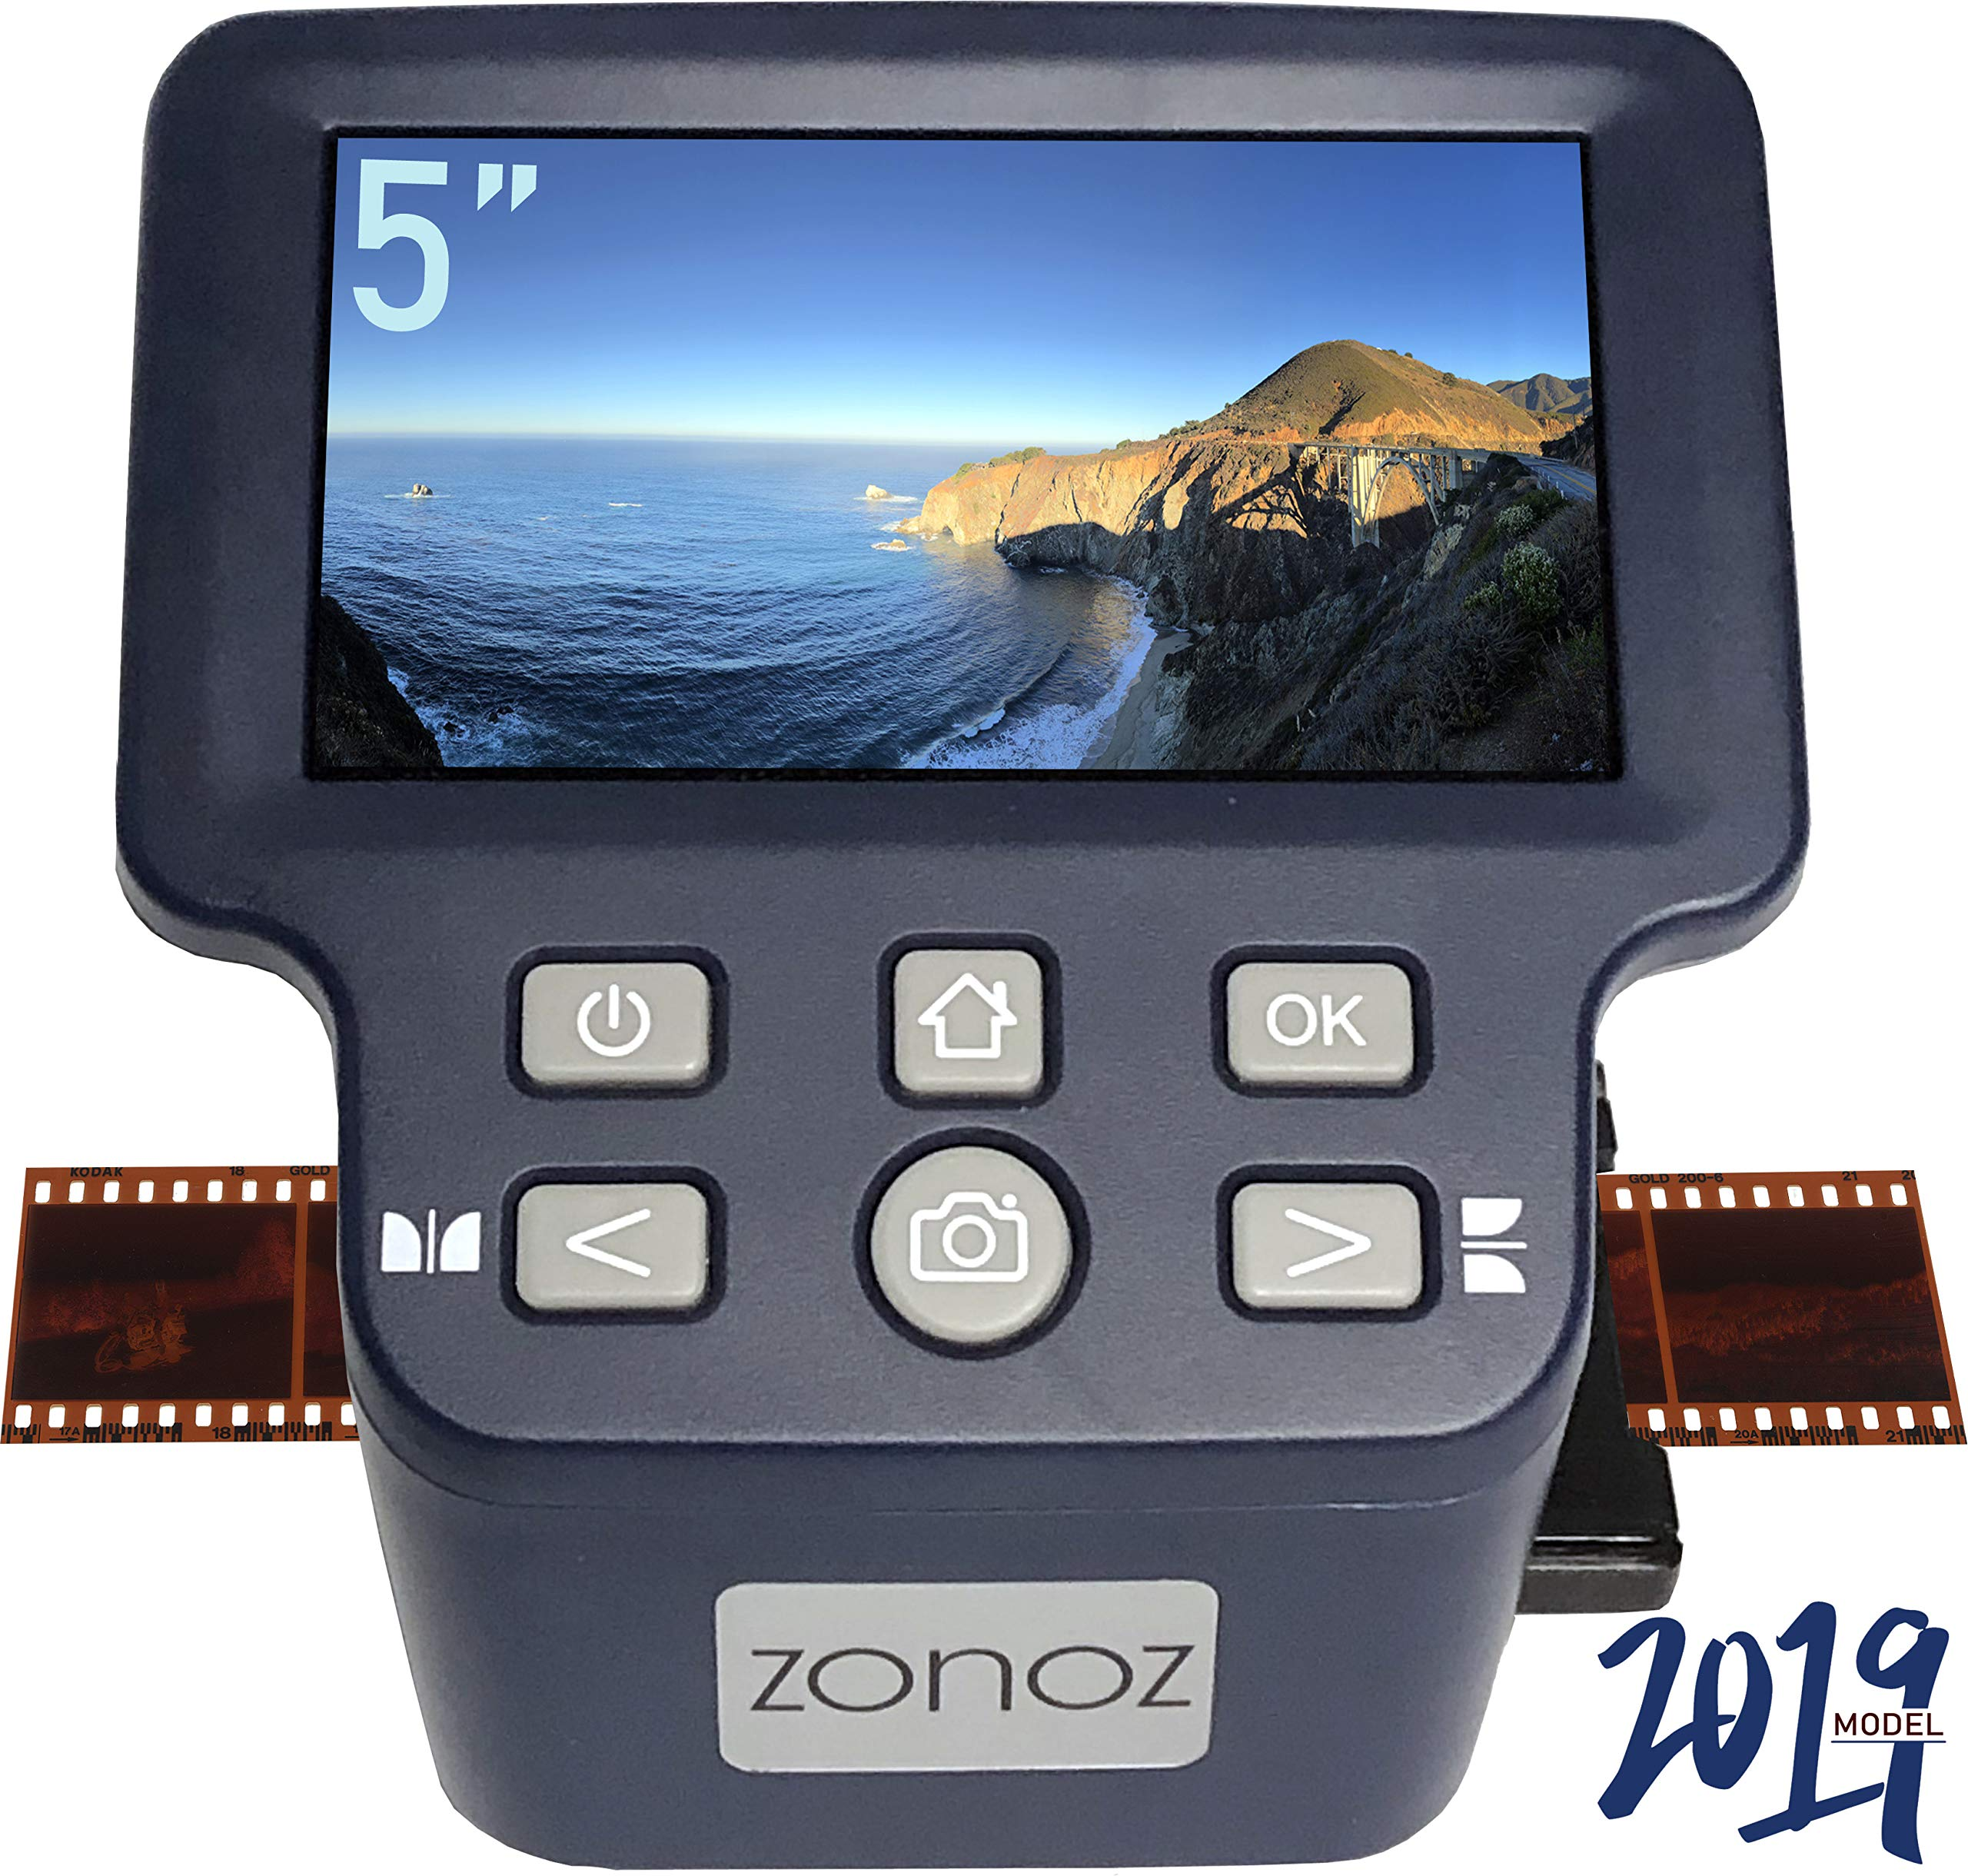 zonoz FS-Four Digital Film & Slide Scanner w/HDMI Output - Converts 35mm, 126, 110, Super 8 & 8mm Film Negatives & Slides to JPEG - Includes Large Bright 5-Inch LCD, Easy-Load Film Inserts Adapters by zonoz